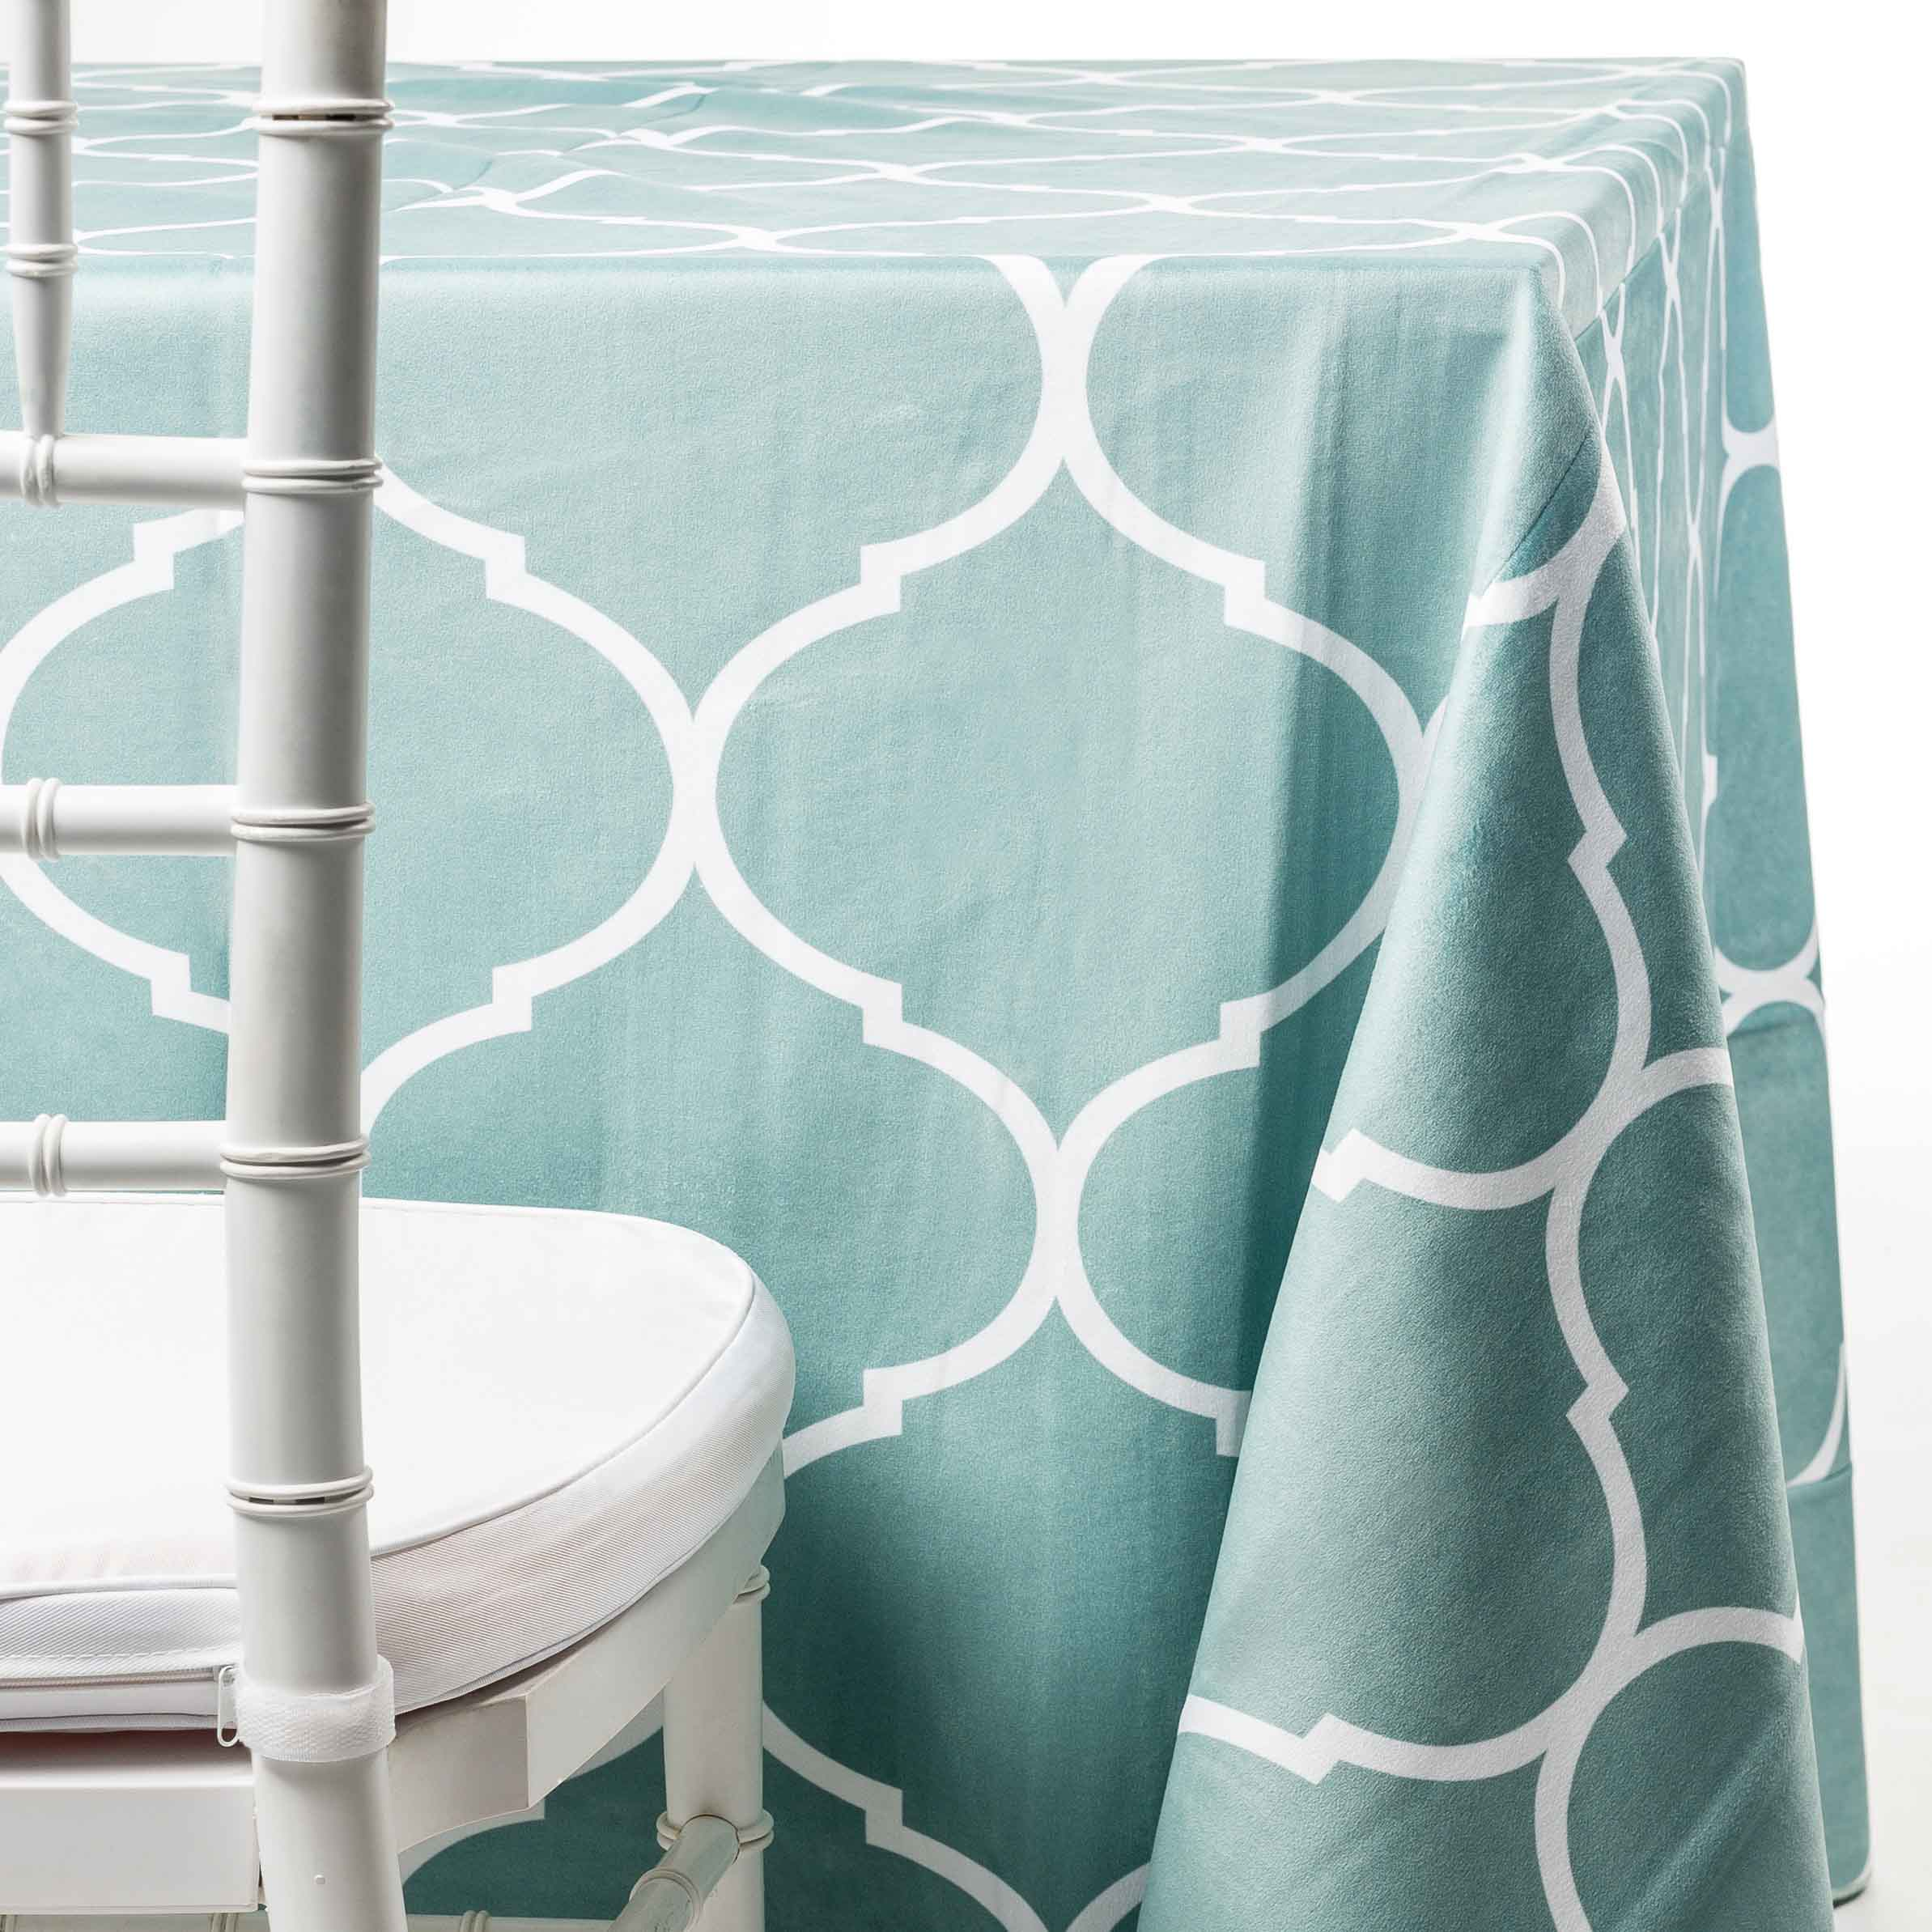 Aqua Geometric Tablecloth Rentals In New Jersey. For Weddings Or Parties.  Tablecloth And Napkin